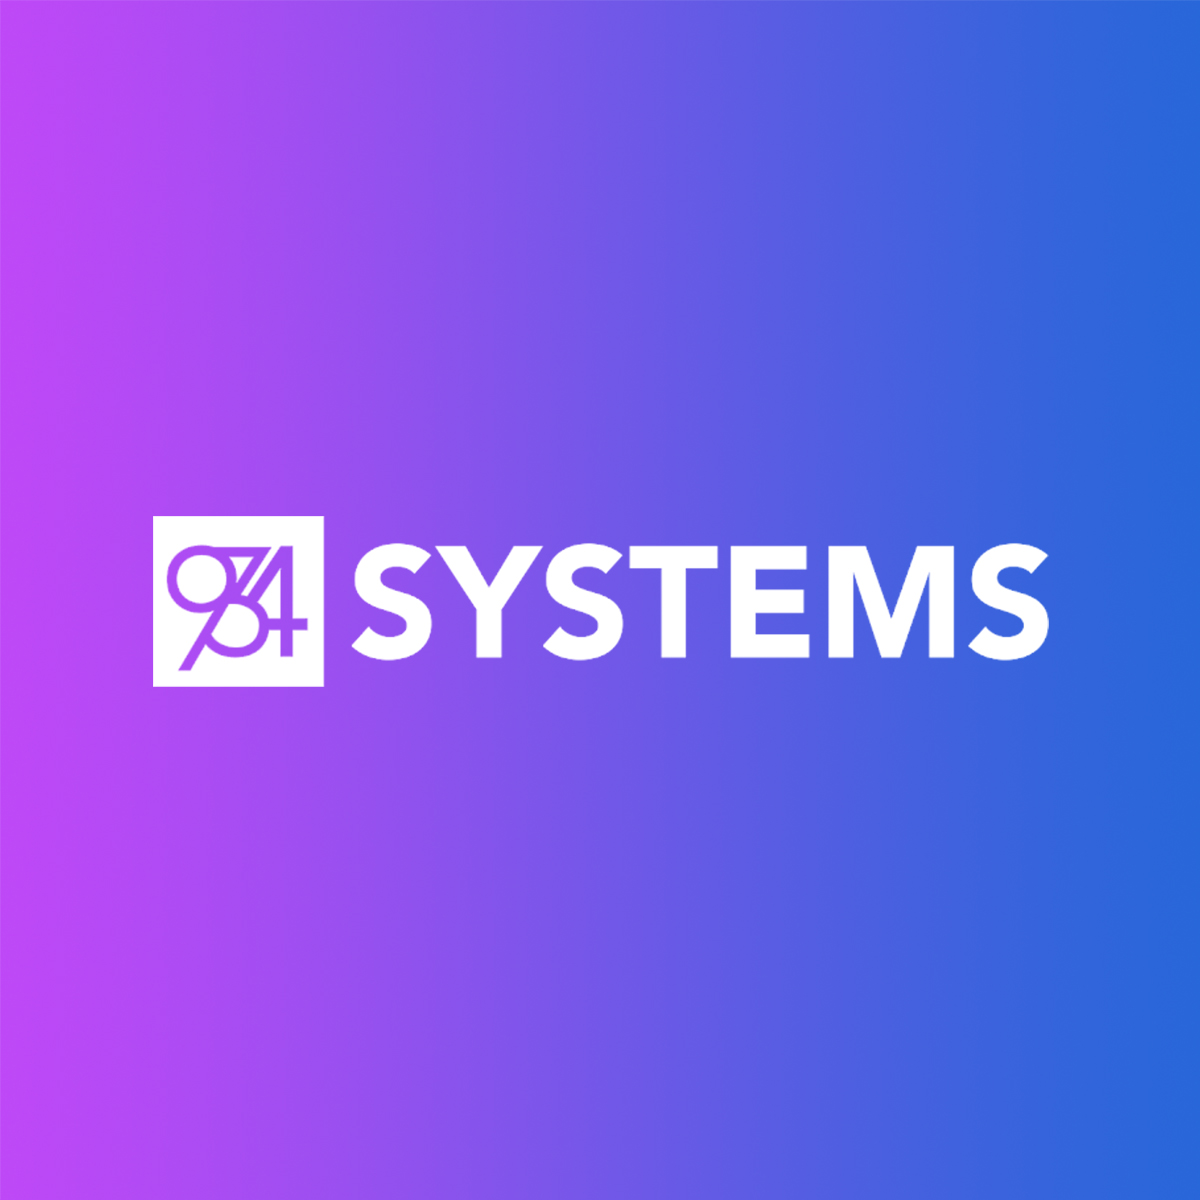 934 Systems